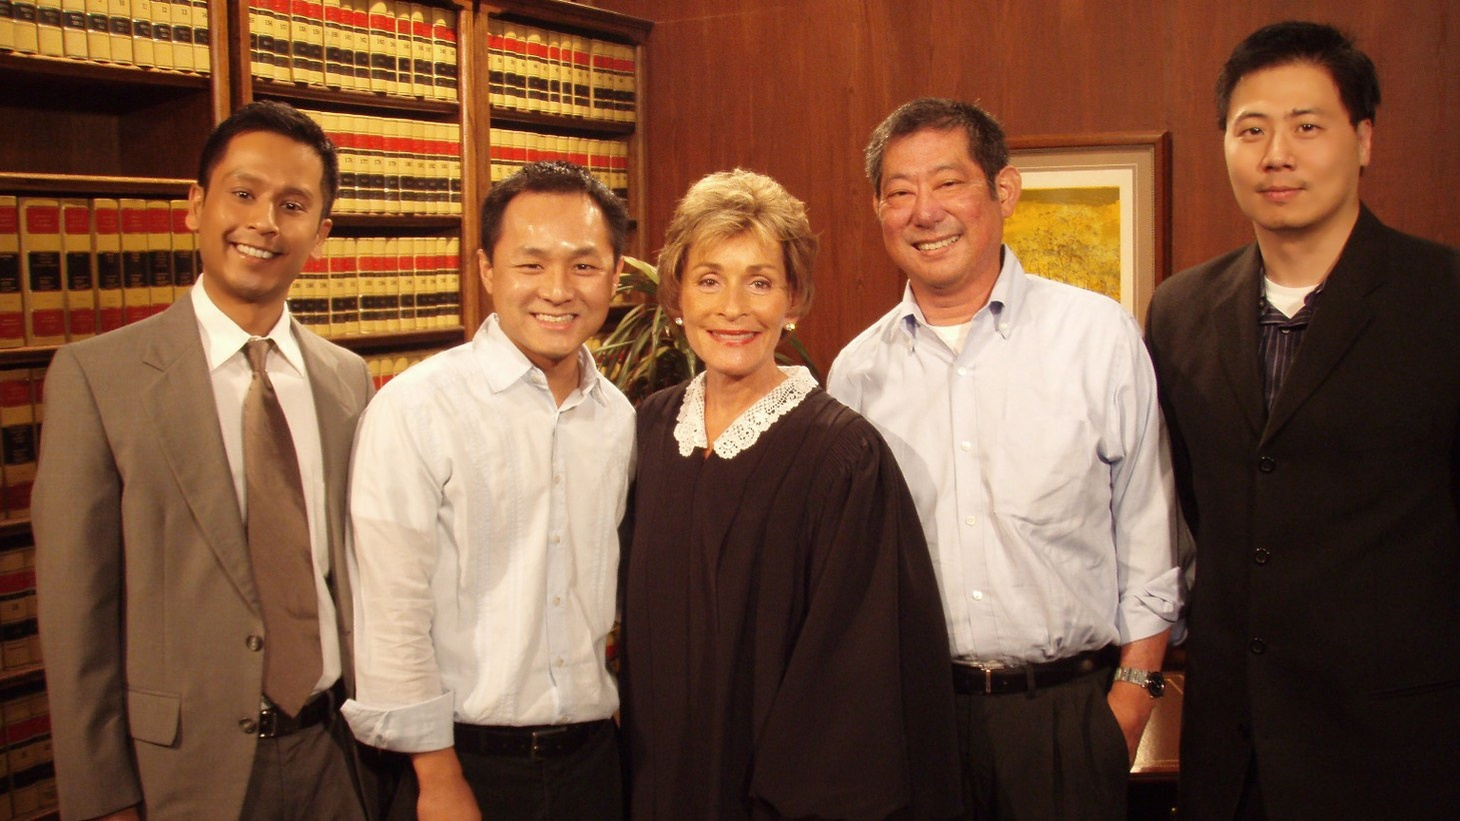 Judge Judy Sheindlin with fans.